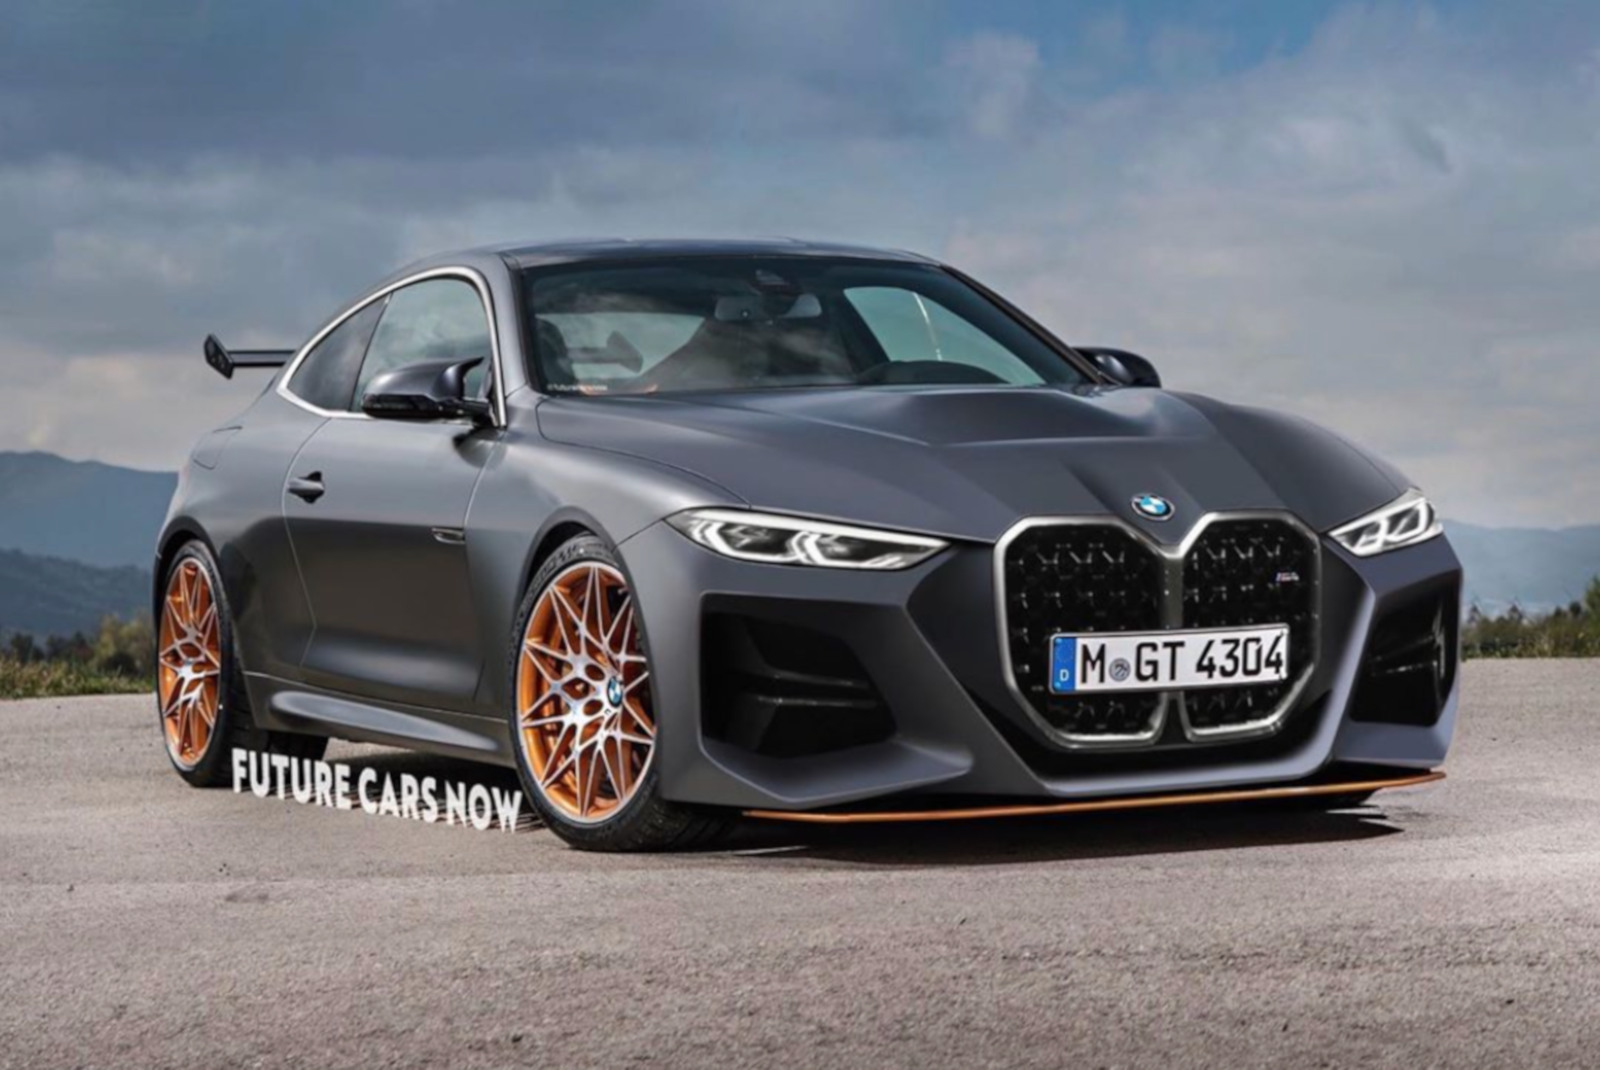 2020 BMW M4 Gts Price, Design and Review